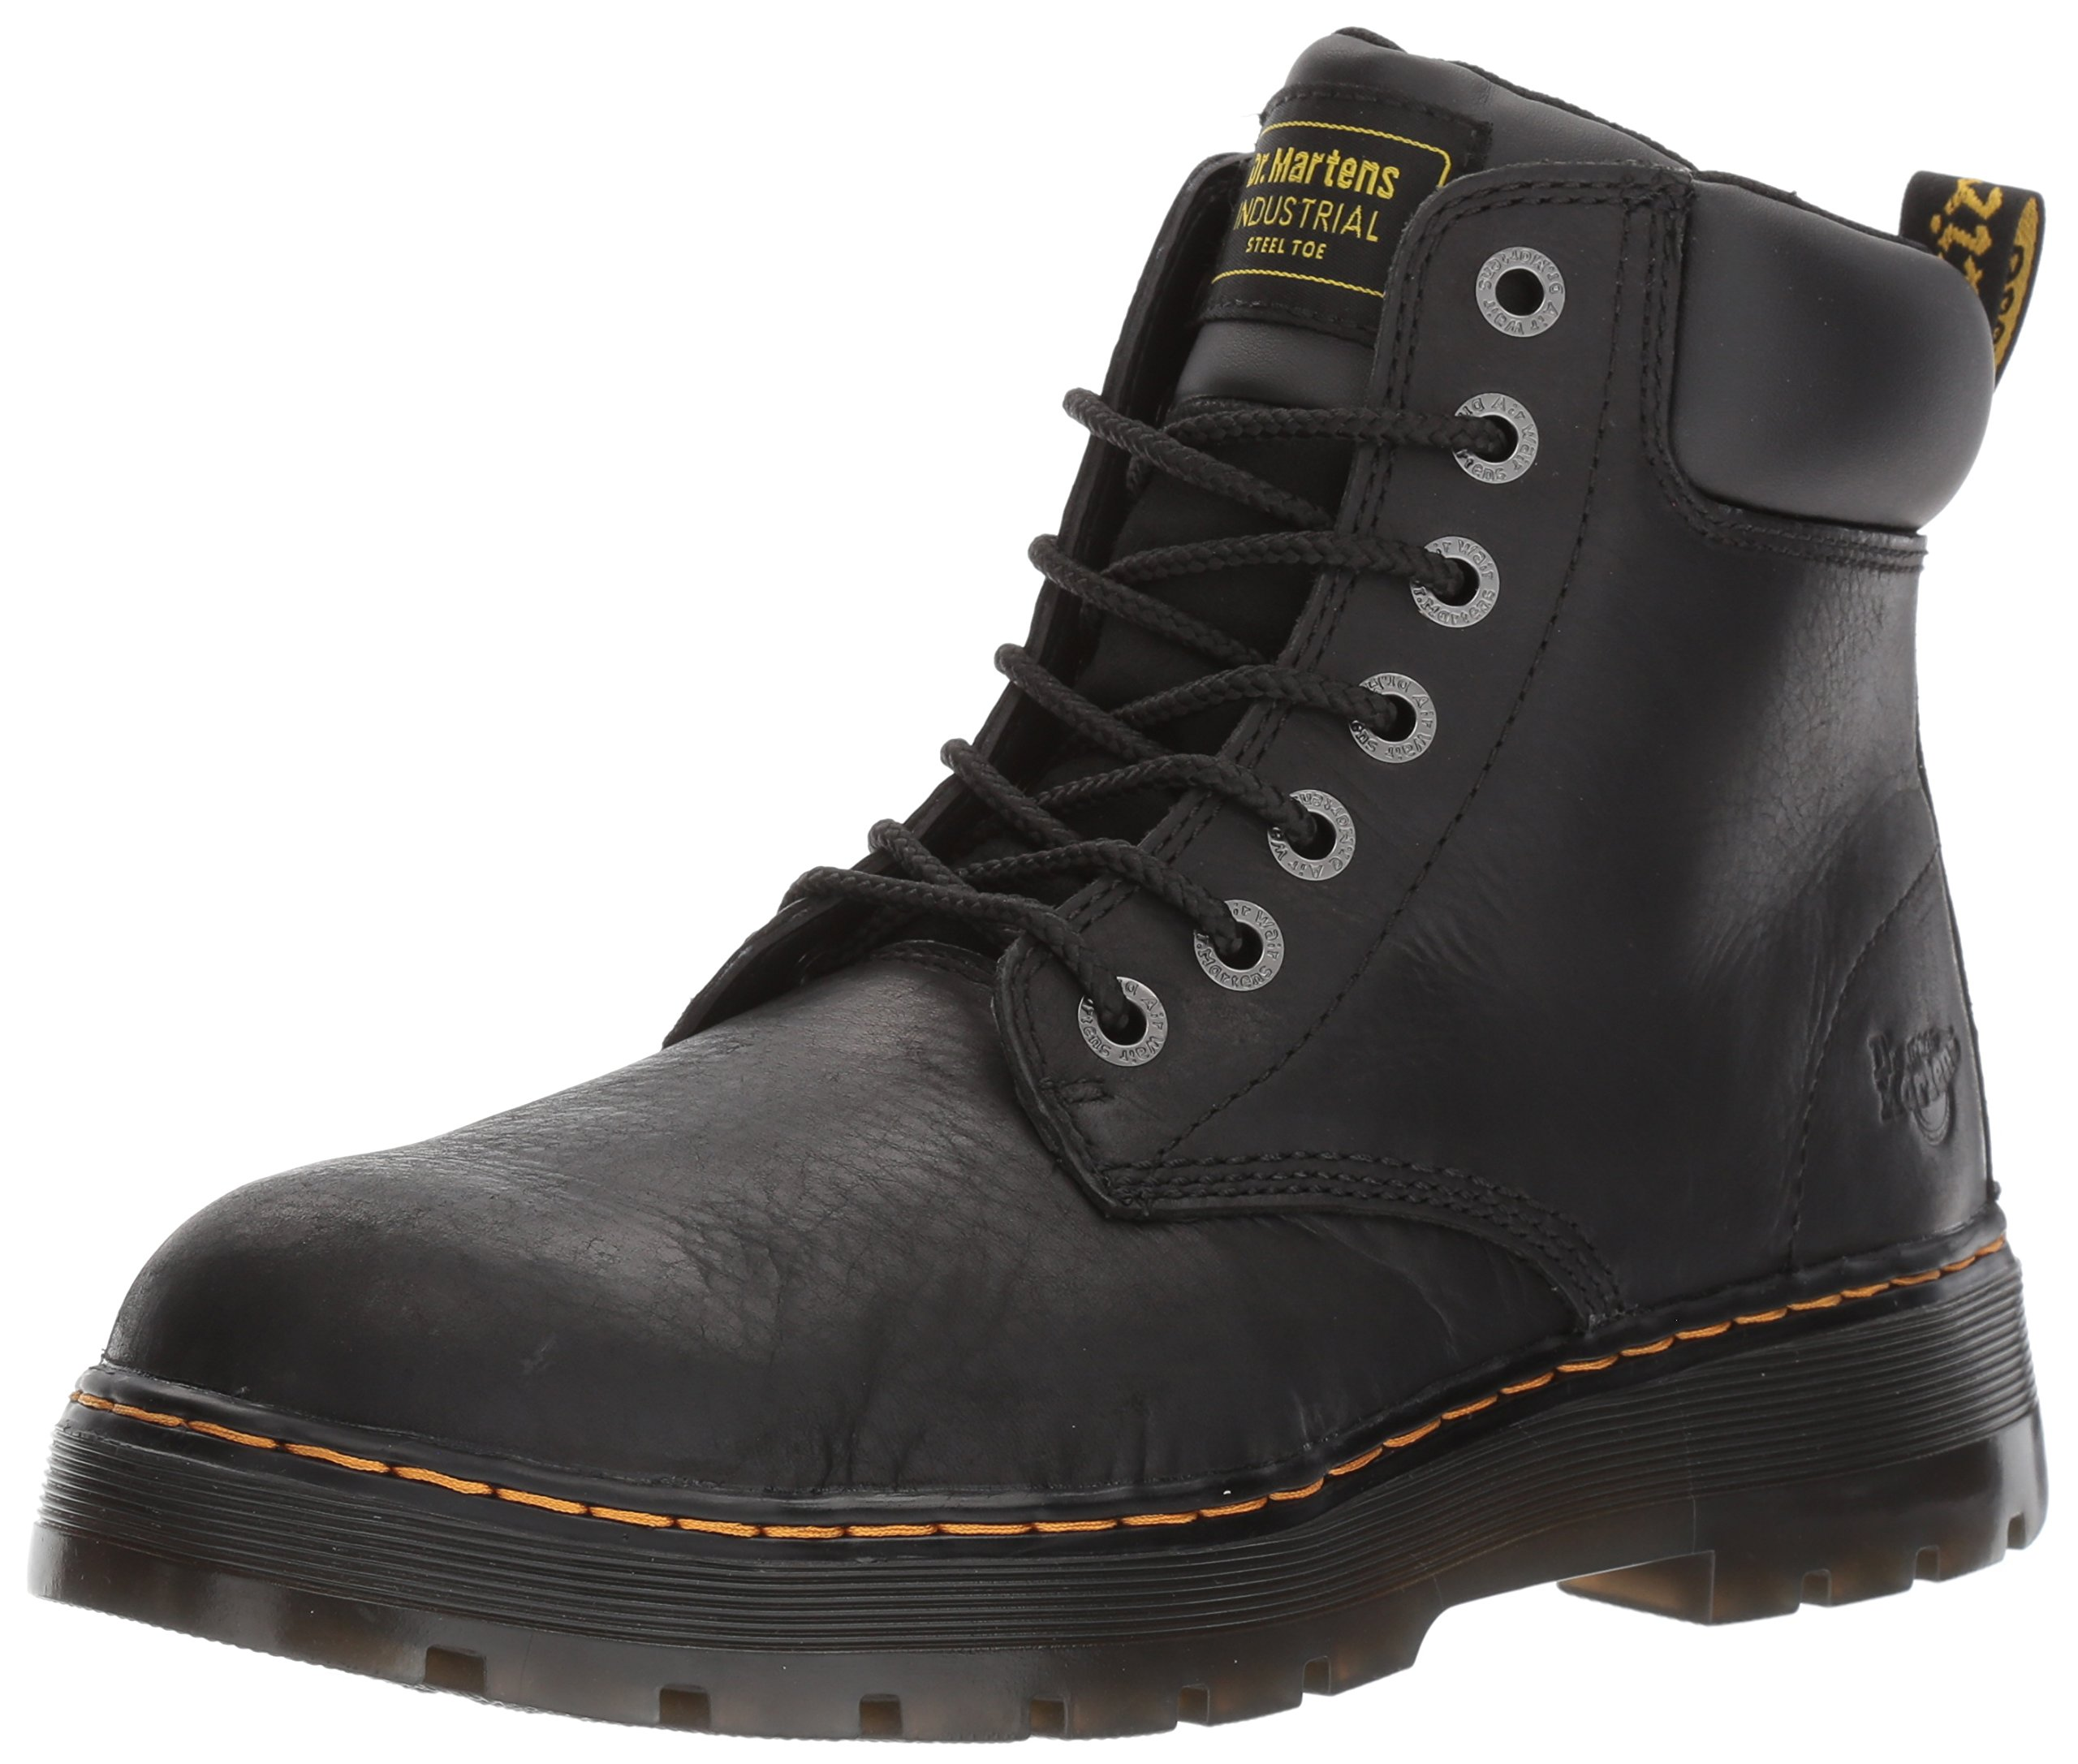 Dr. Martens Men's Winch 7-eye Lace-up Steel-toe Black Boot, Medium / 10 F(M) UK / 11 D(M) US